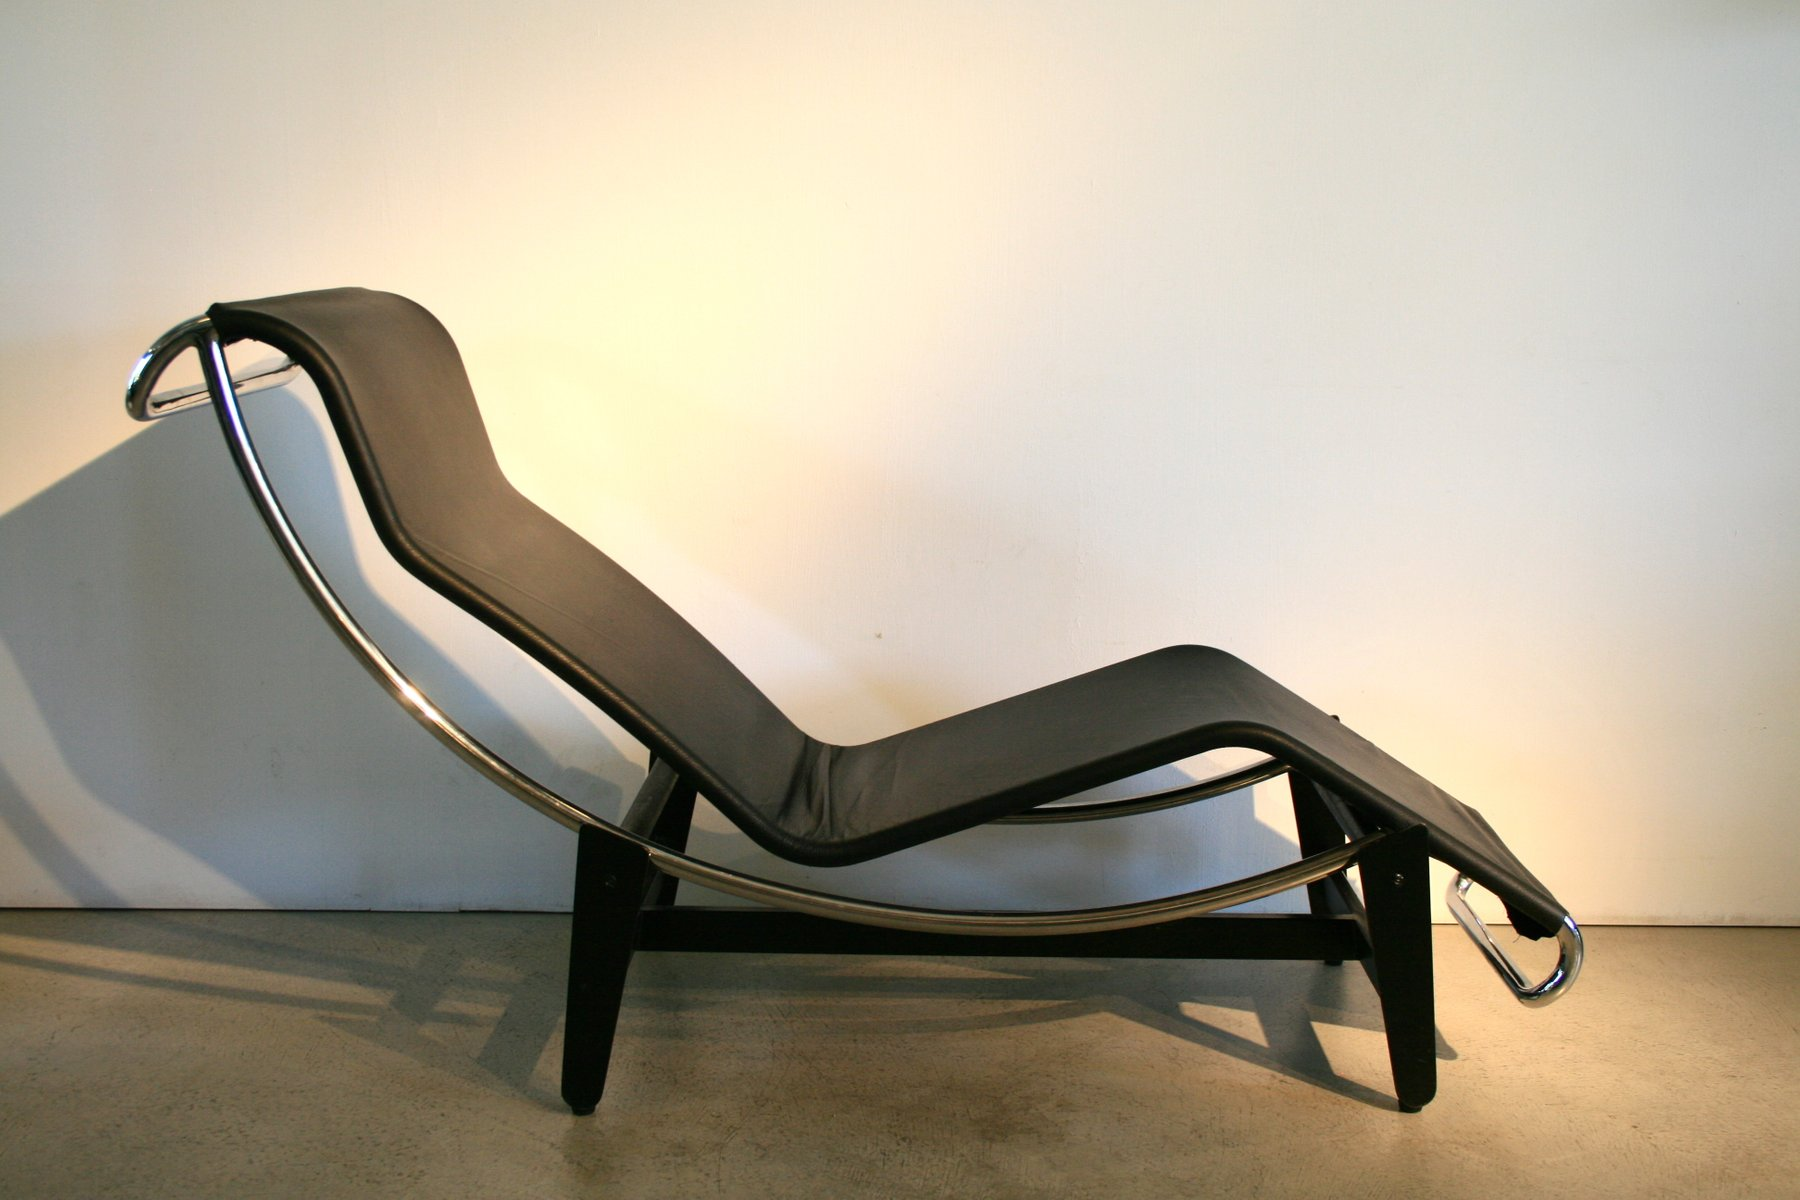 corbusier lounge chair ava slipcovered and a half vintage lc4 by le for wohnbedarf